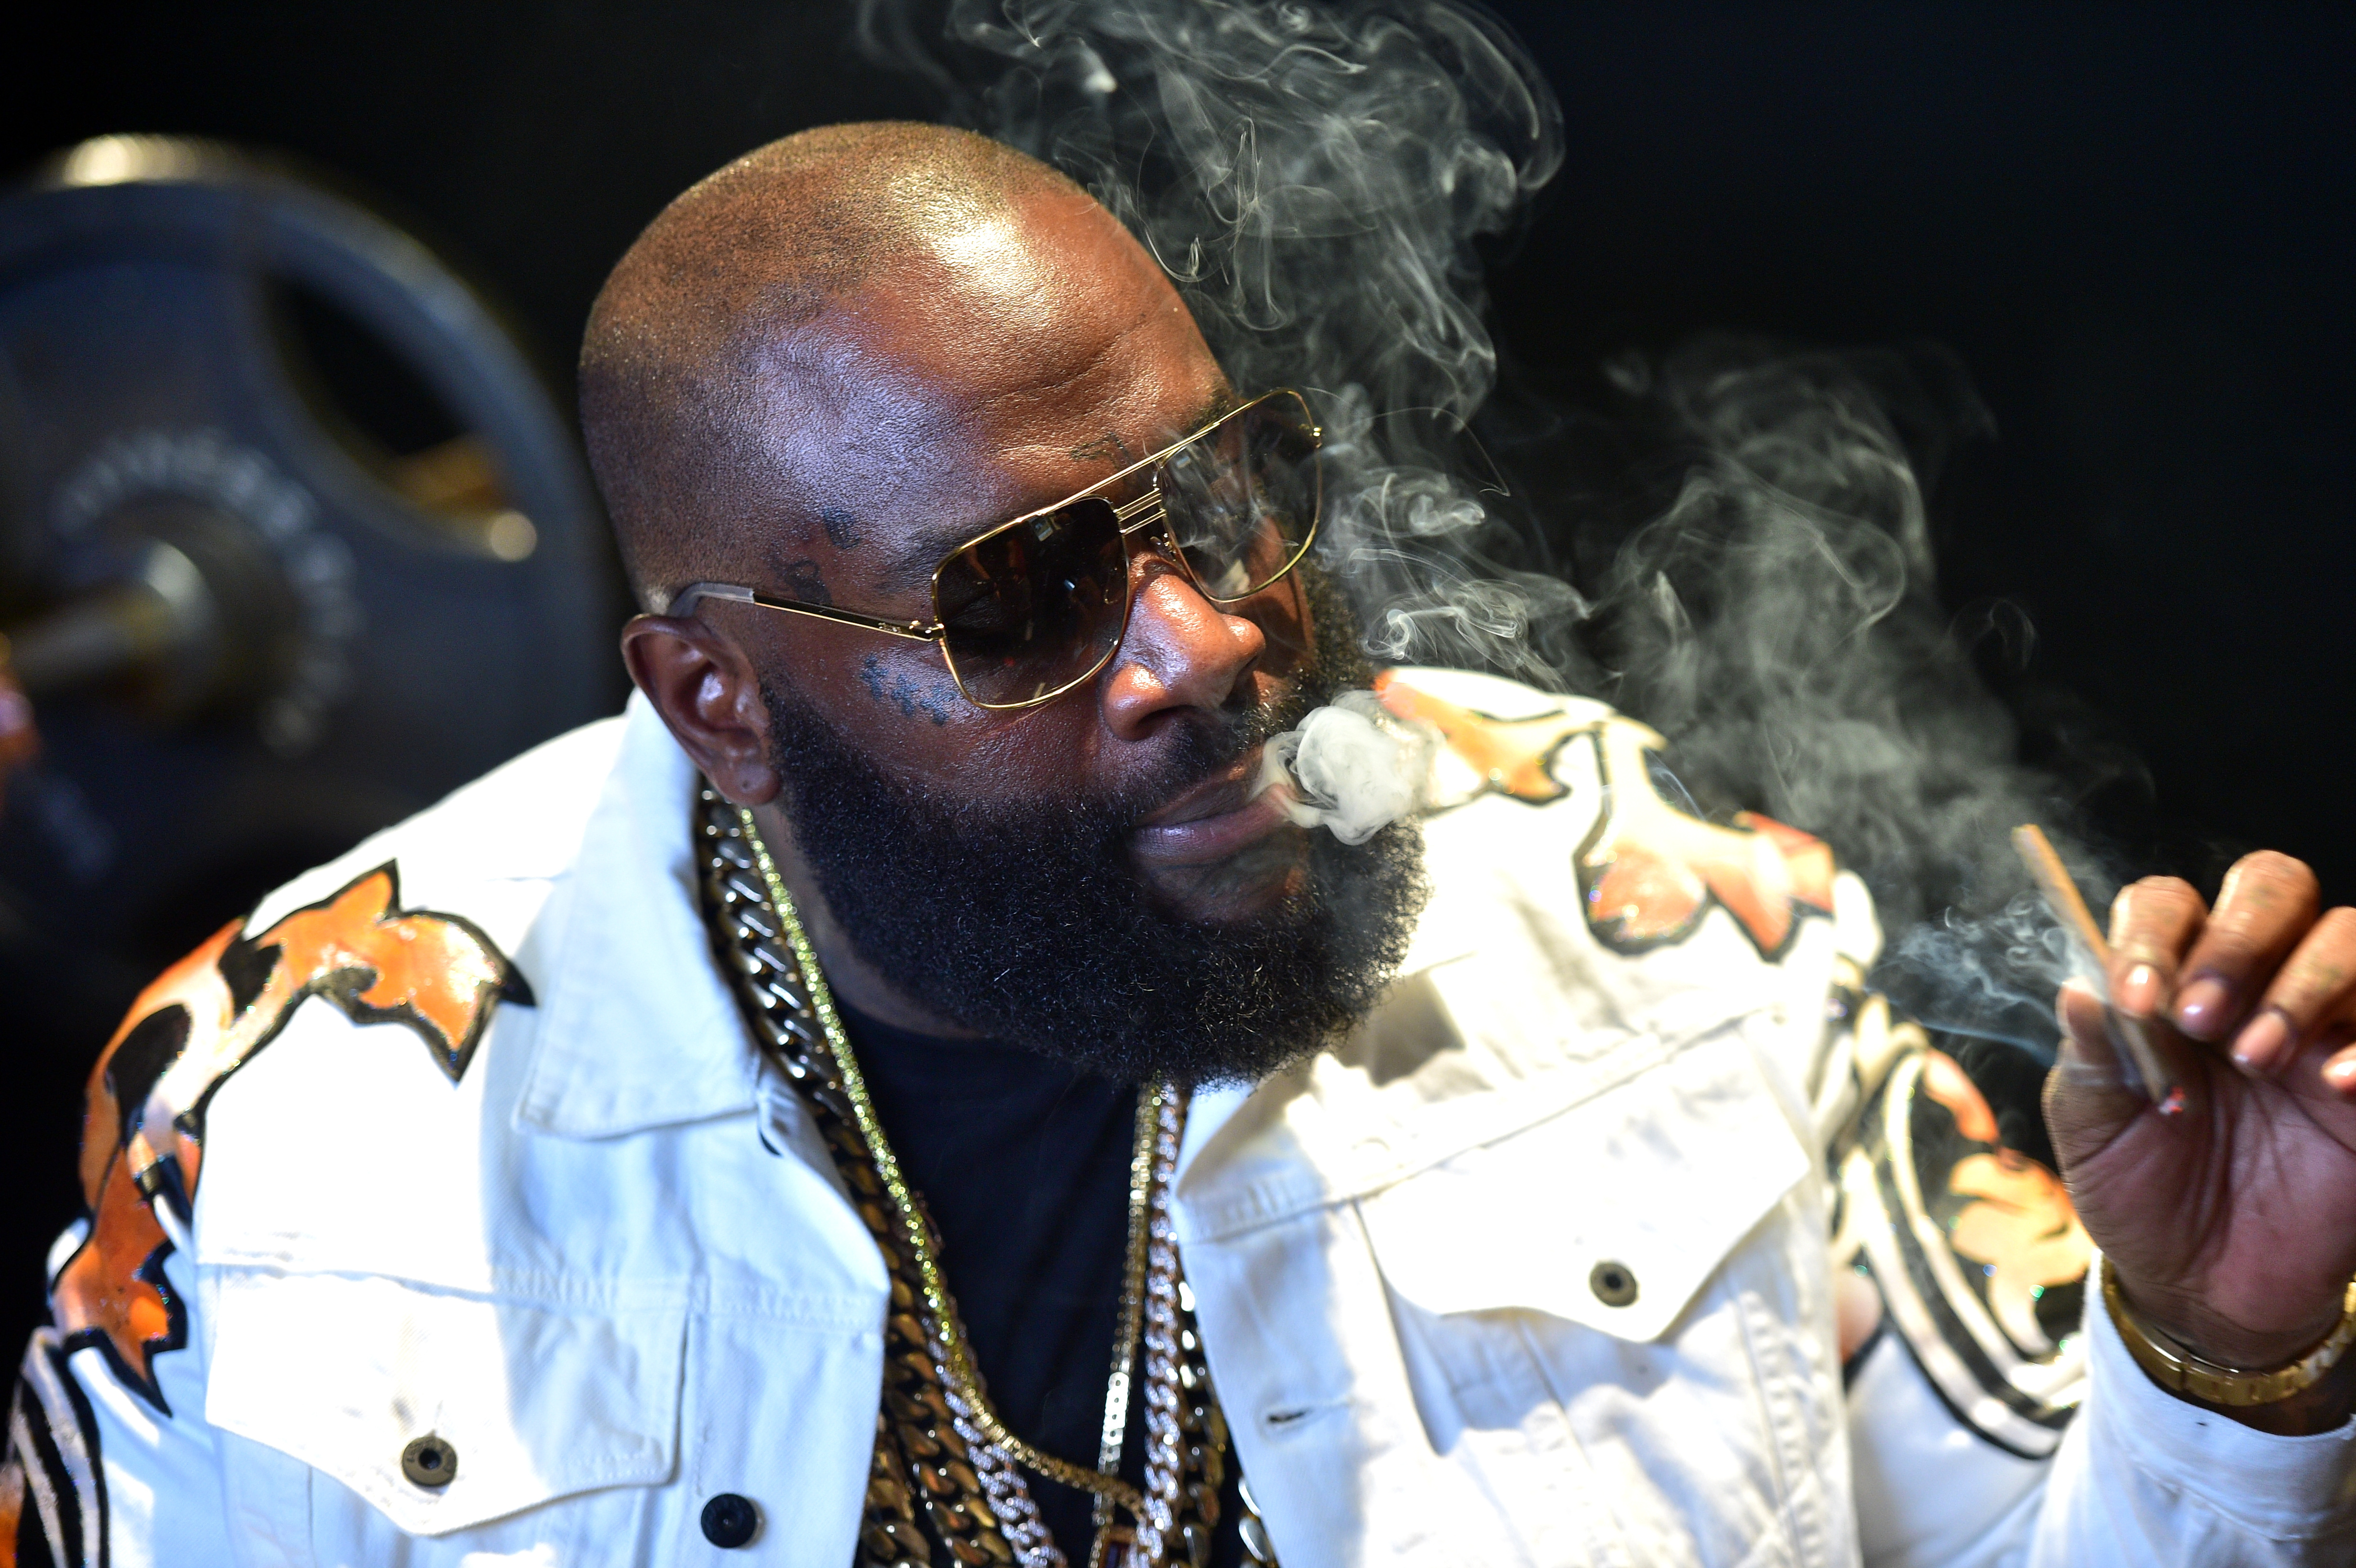 2ea42c4b0bc Rick Ross Arrested on Charges of Kidnapping